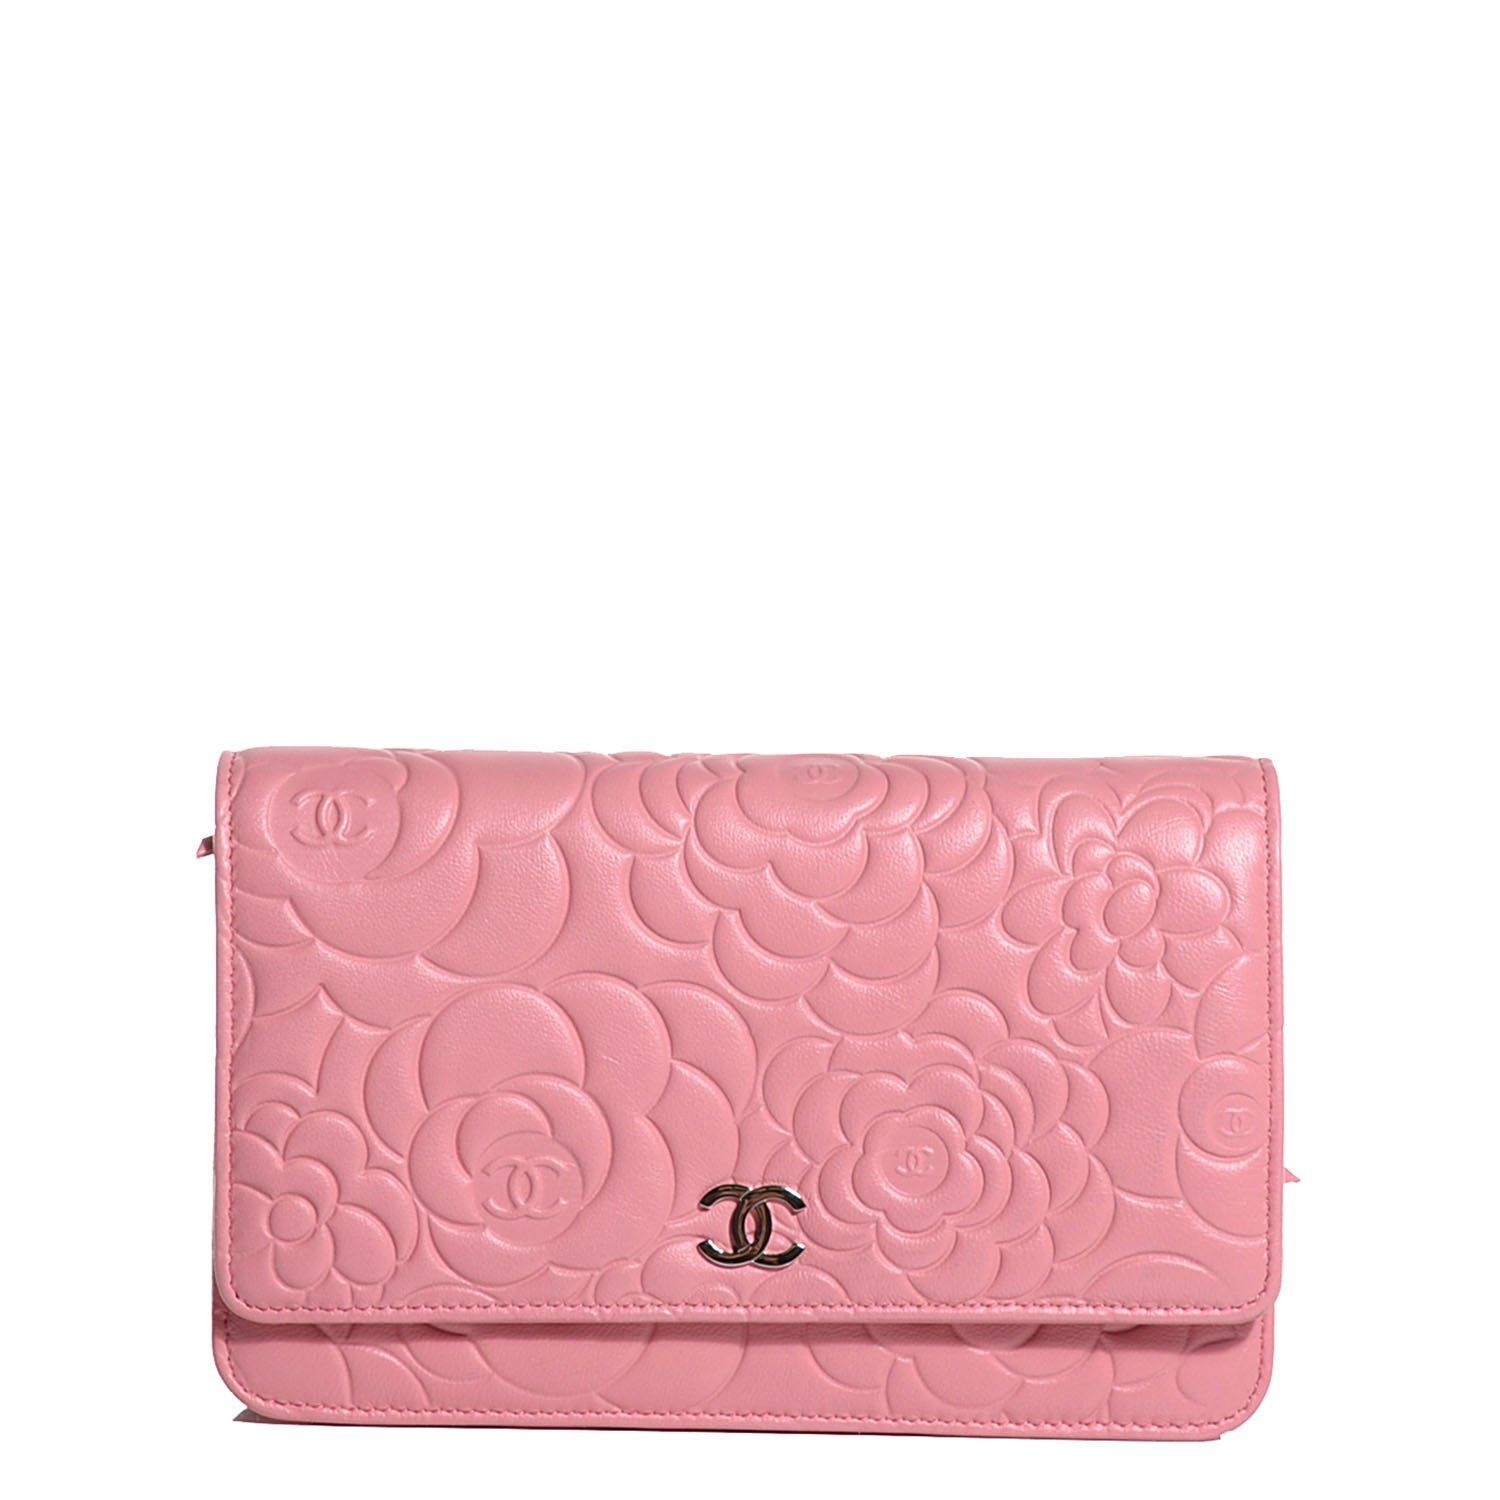 35e5ef3764e7 This is an authentic CHANEL Lambskin Camellia Embossed Wallet on Chain WOC  in Pink. This